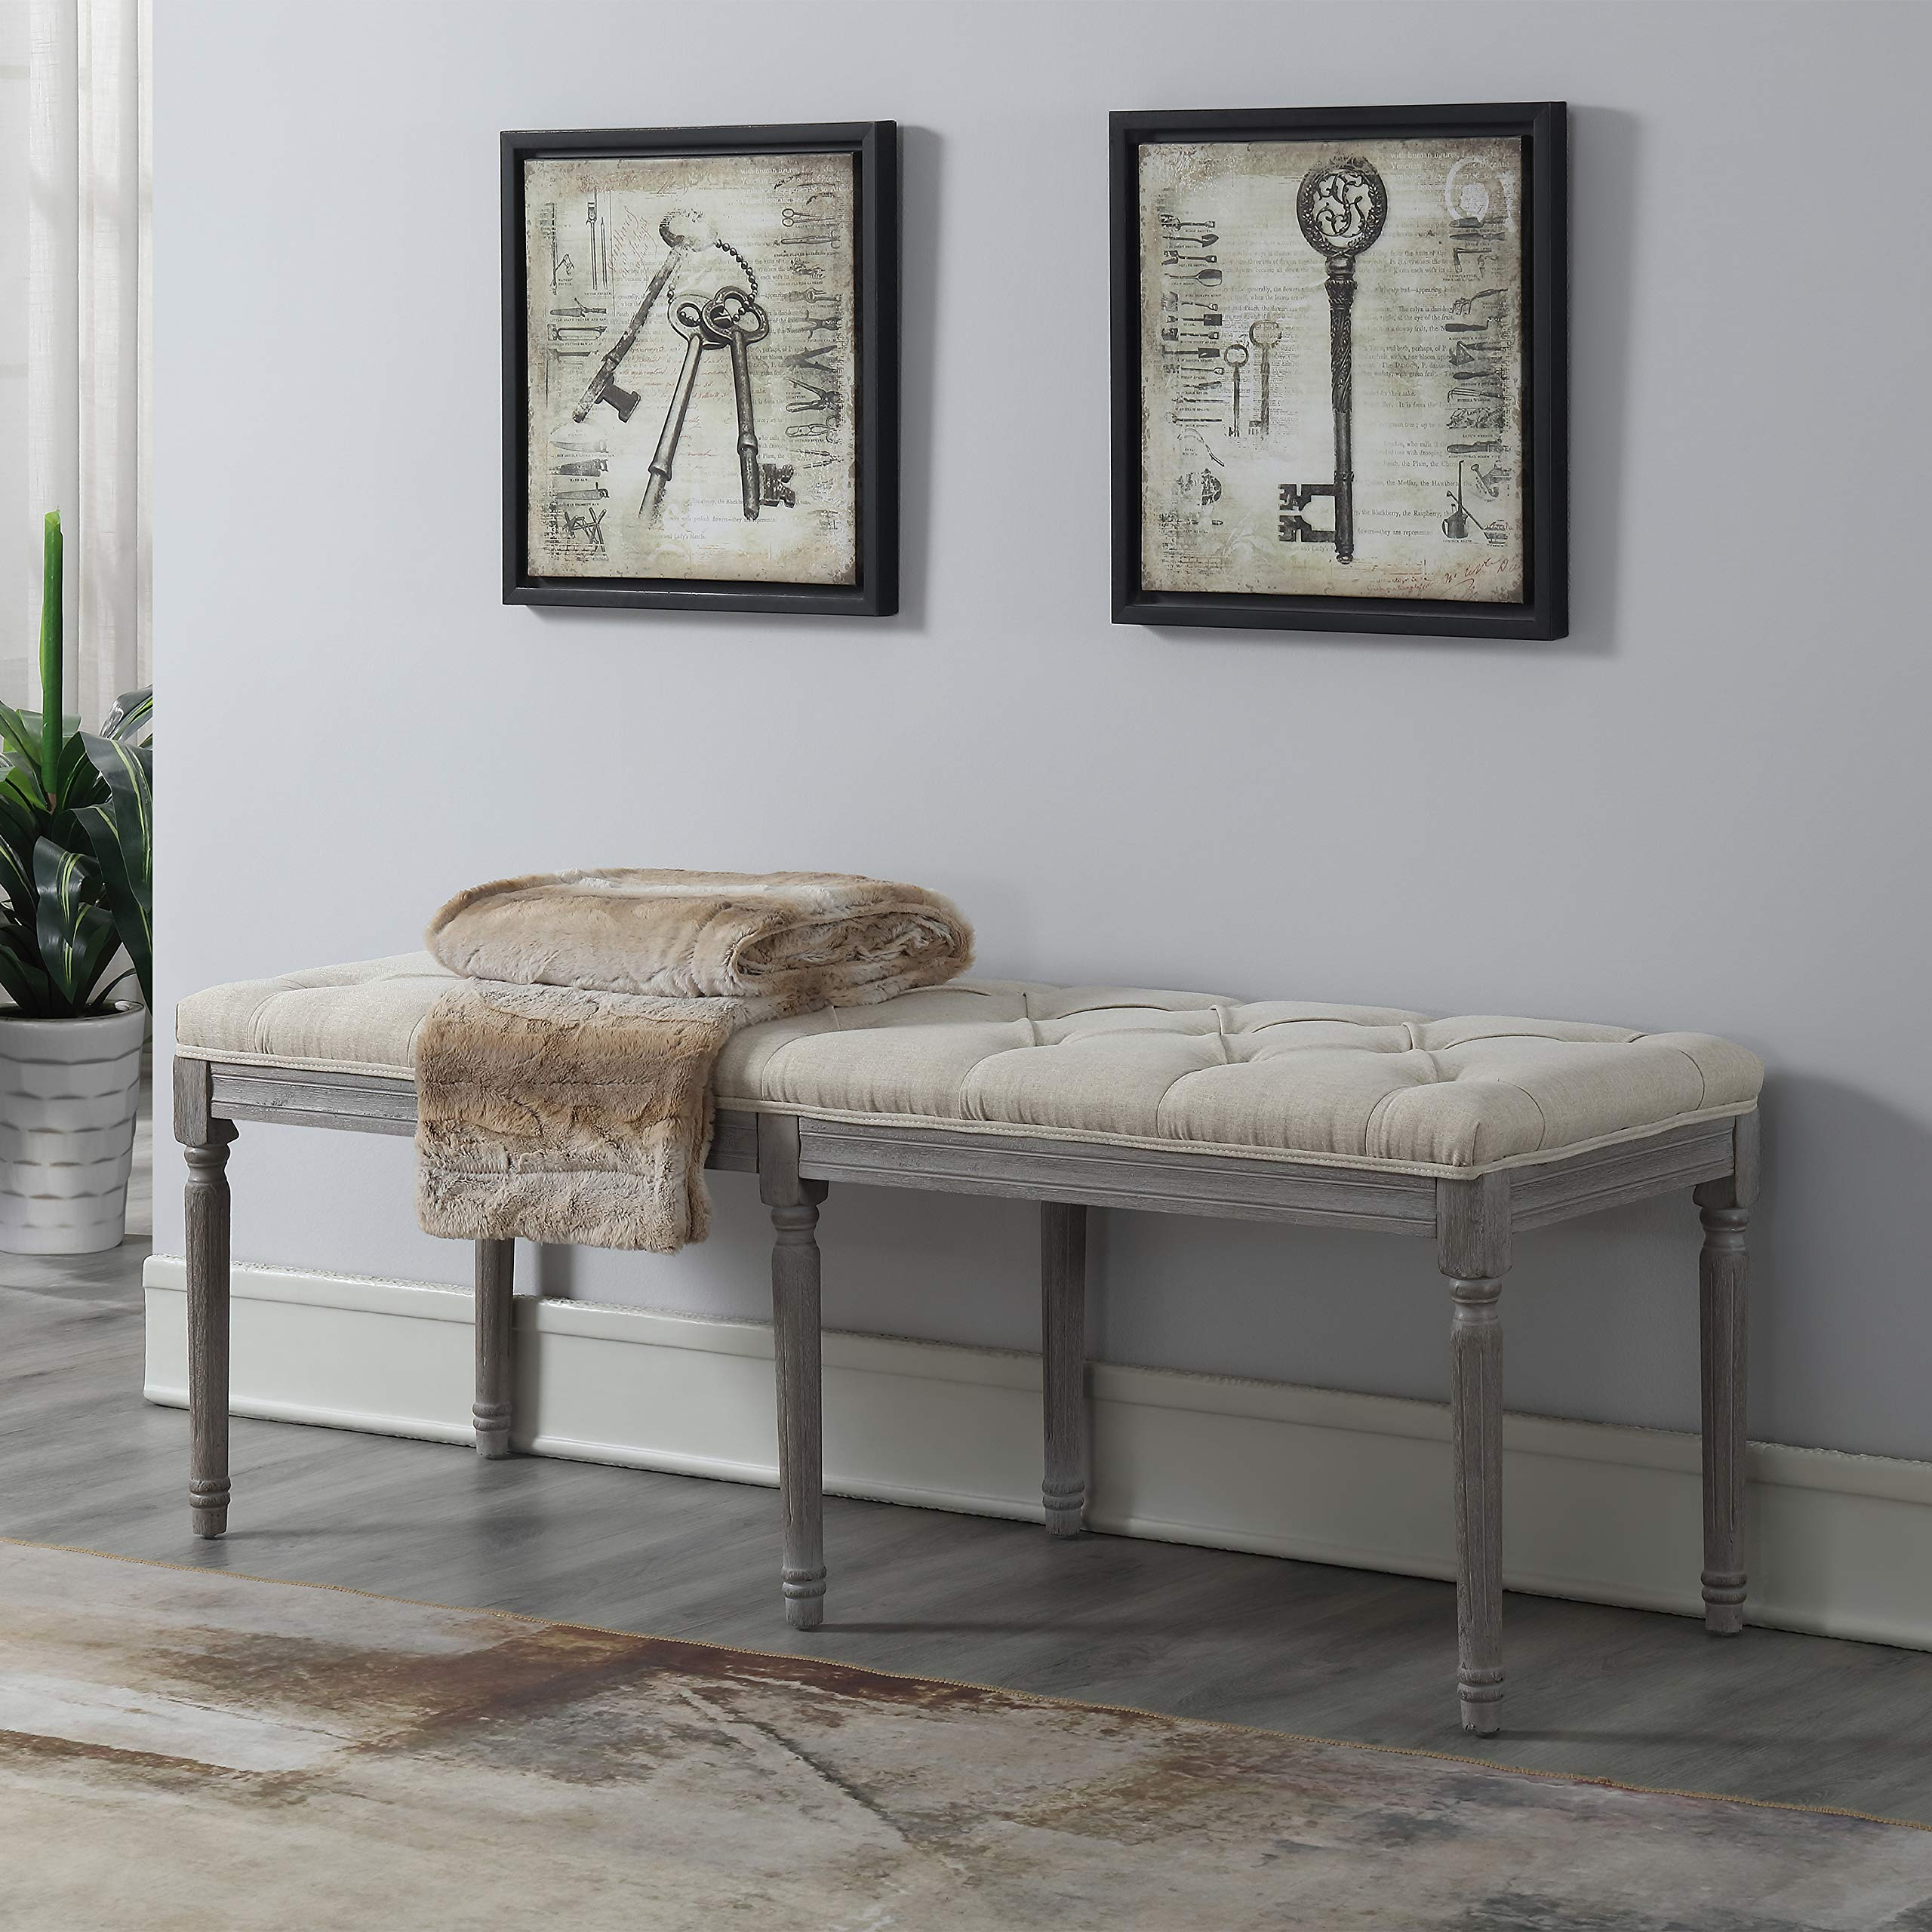 Jack Button Tufted Light Beige Upholstered Bench with Weathered Gray Legs by CHL CHRISTIES HOME LIVING (Image #3)